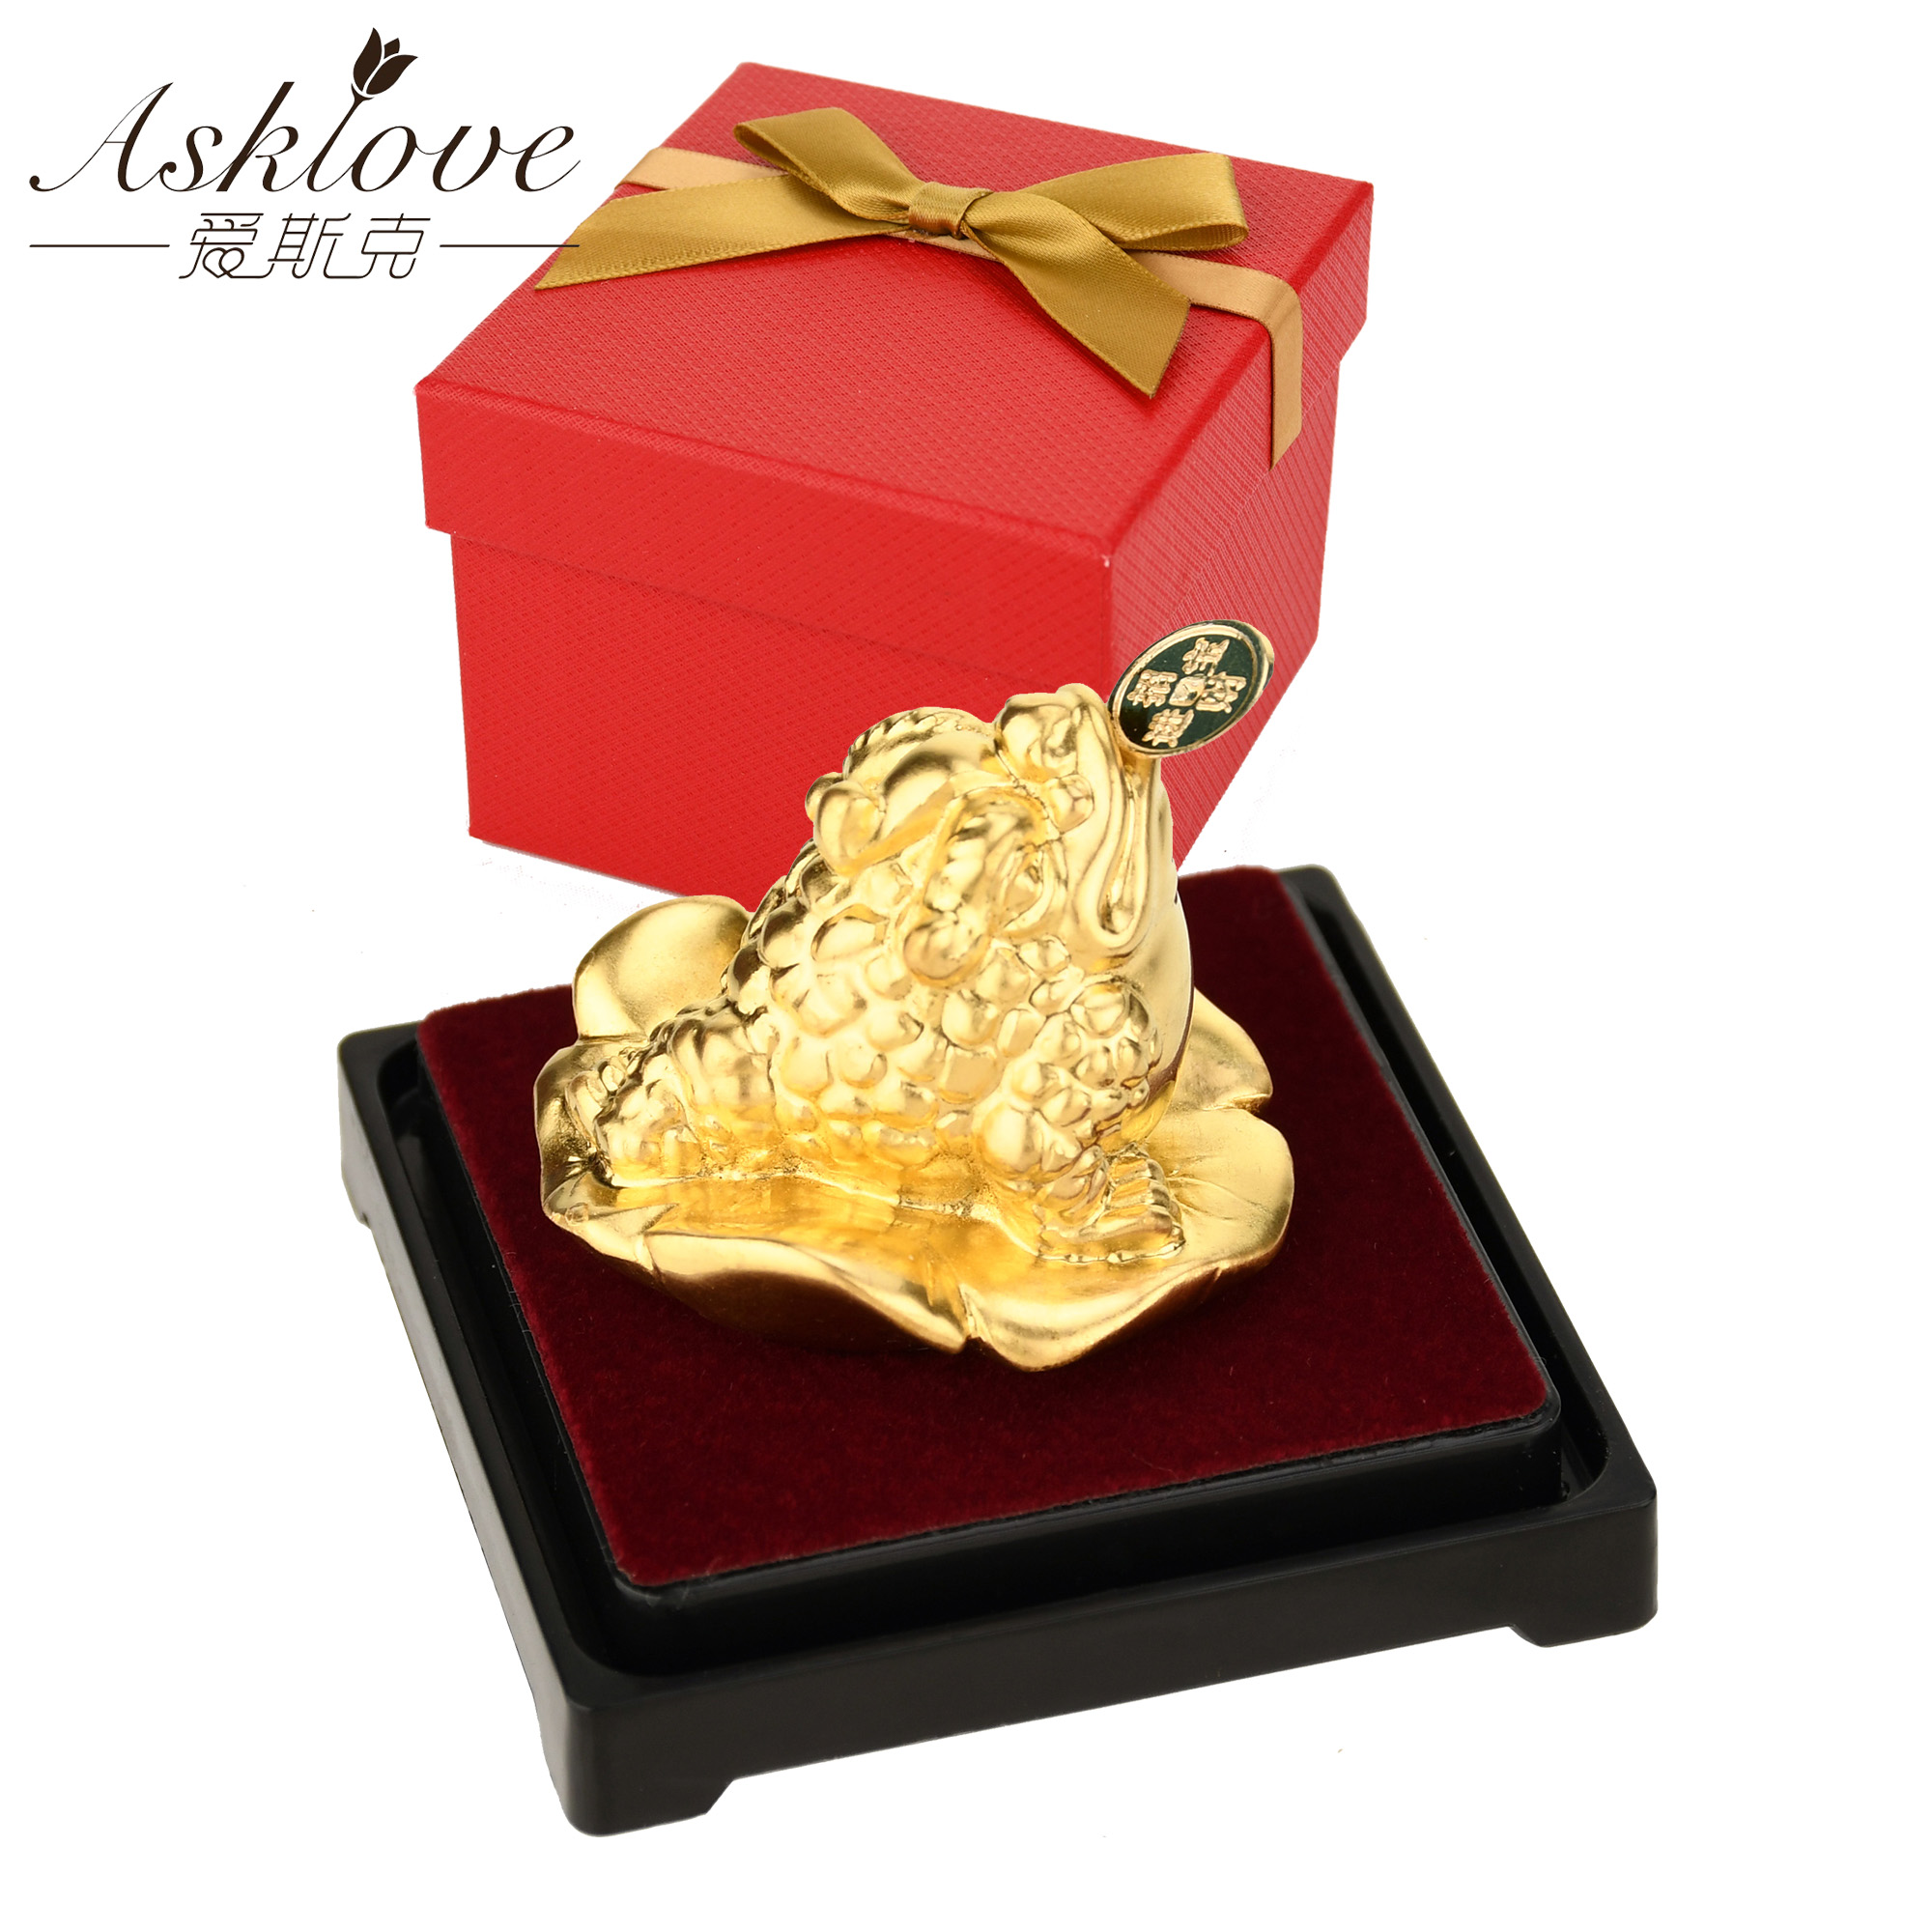 24k Gold Foil Frog Feng Shui Toad Chinese Golden Frog Money Lucky Fortune Wealth Office Tabletop Ornament Home Decor Lucky Gifts(China)